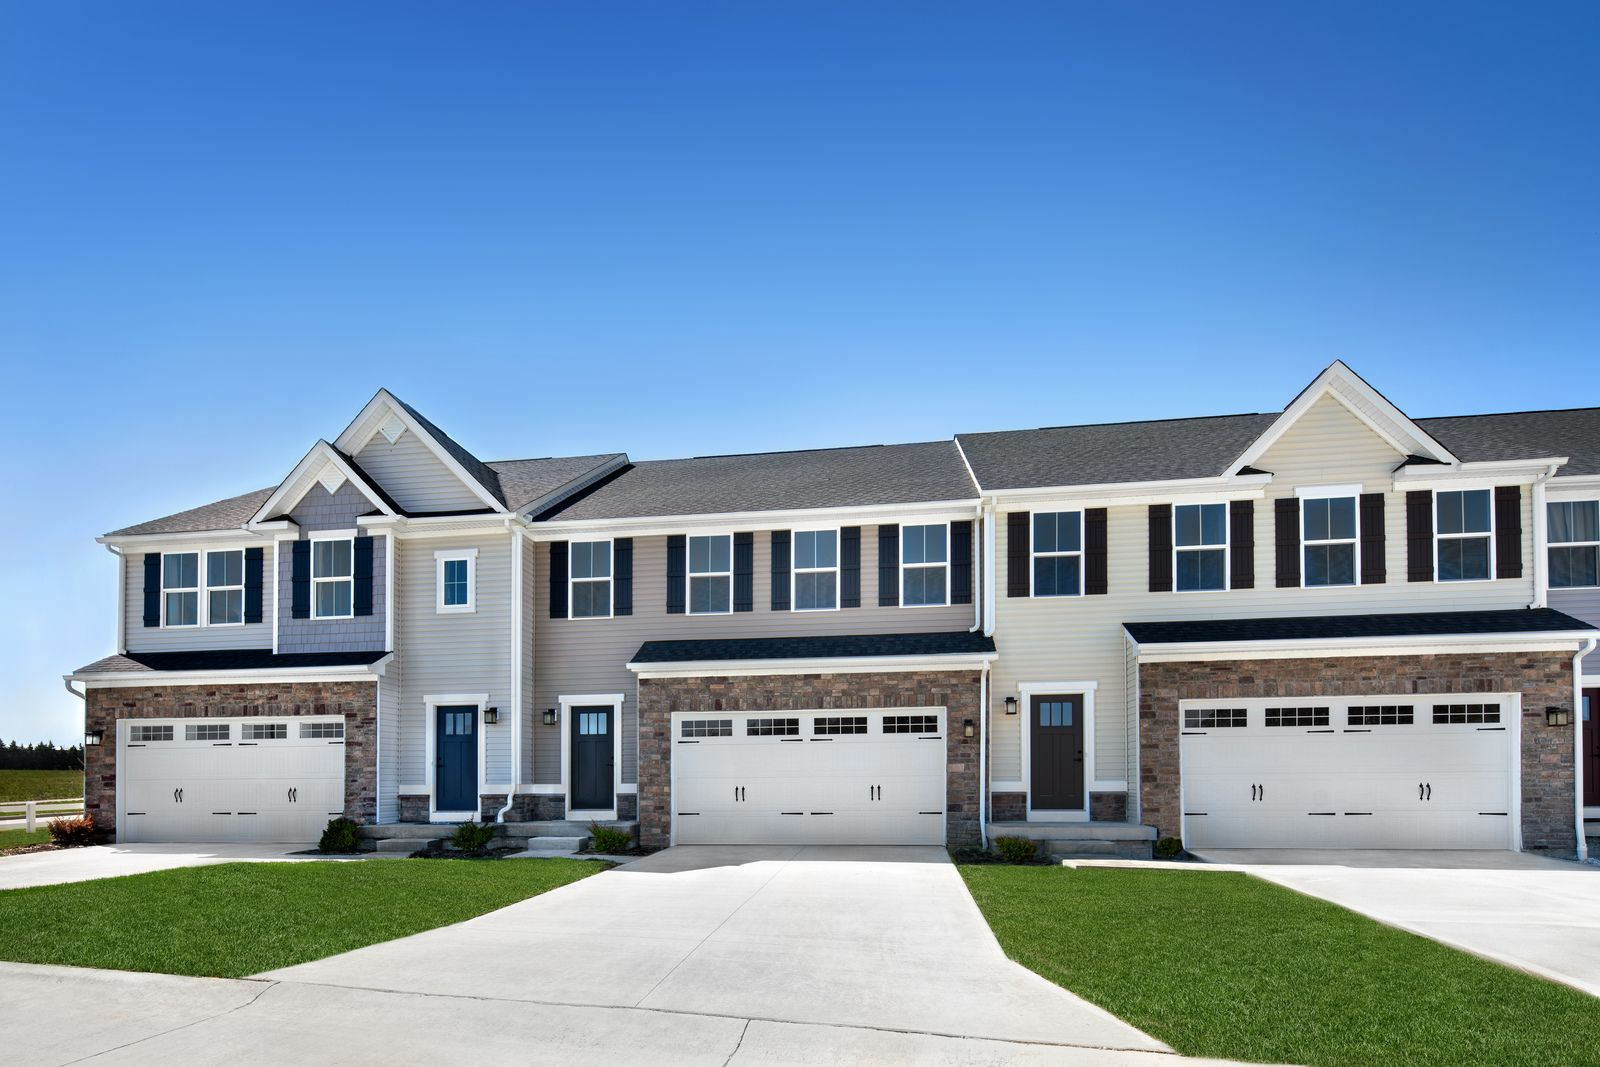 WELCOME HOME TO TOWNS AT CEDAR CREST IN STOW—SINGLE FAMILY STYLE LIVING:Design and own a single family style townhome with lawn/snow care provided! Serene setting tucked off Rt 91, just south of Hudson. Stow-Munroe Falls Schools!Click here to schedule your visit!